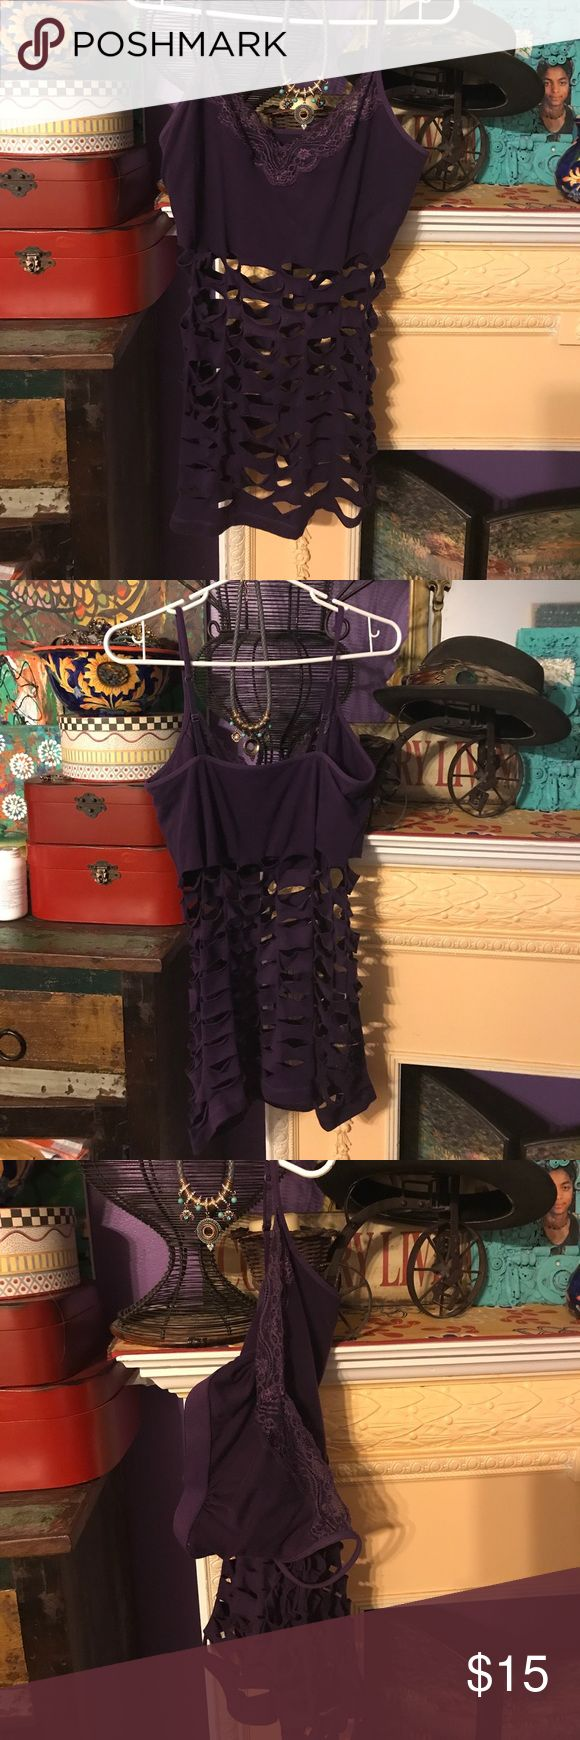 Bra cami purple M with lace used pretty . Used purple cami with lace . M good condition pretty. Redesigned one of a kind can be worn with anything, now add your favorite accessory and a little imagination and you will have a different look every time you wear it Tops Tank Tops